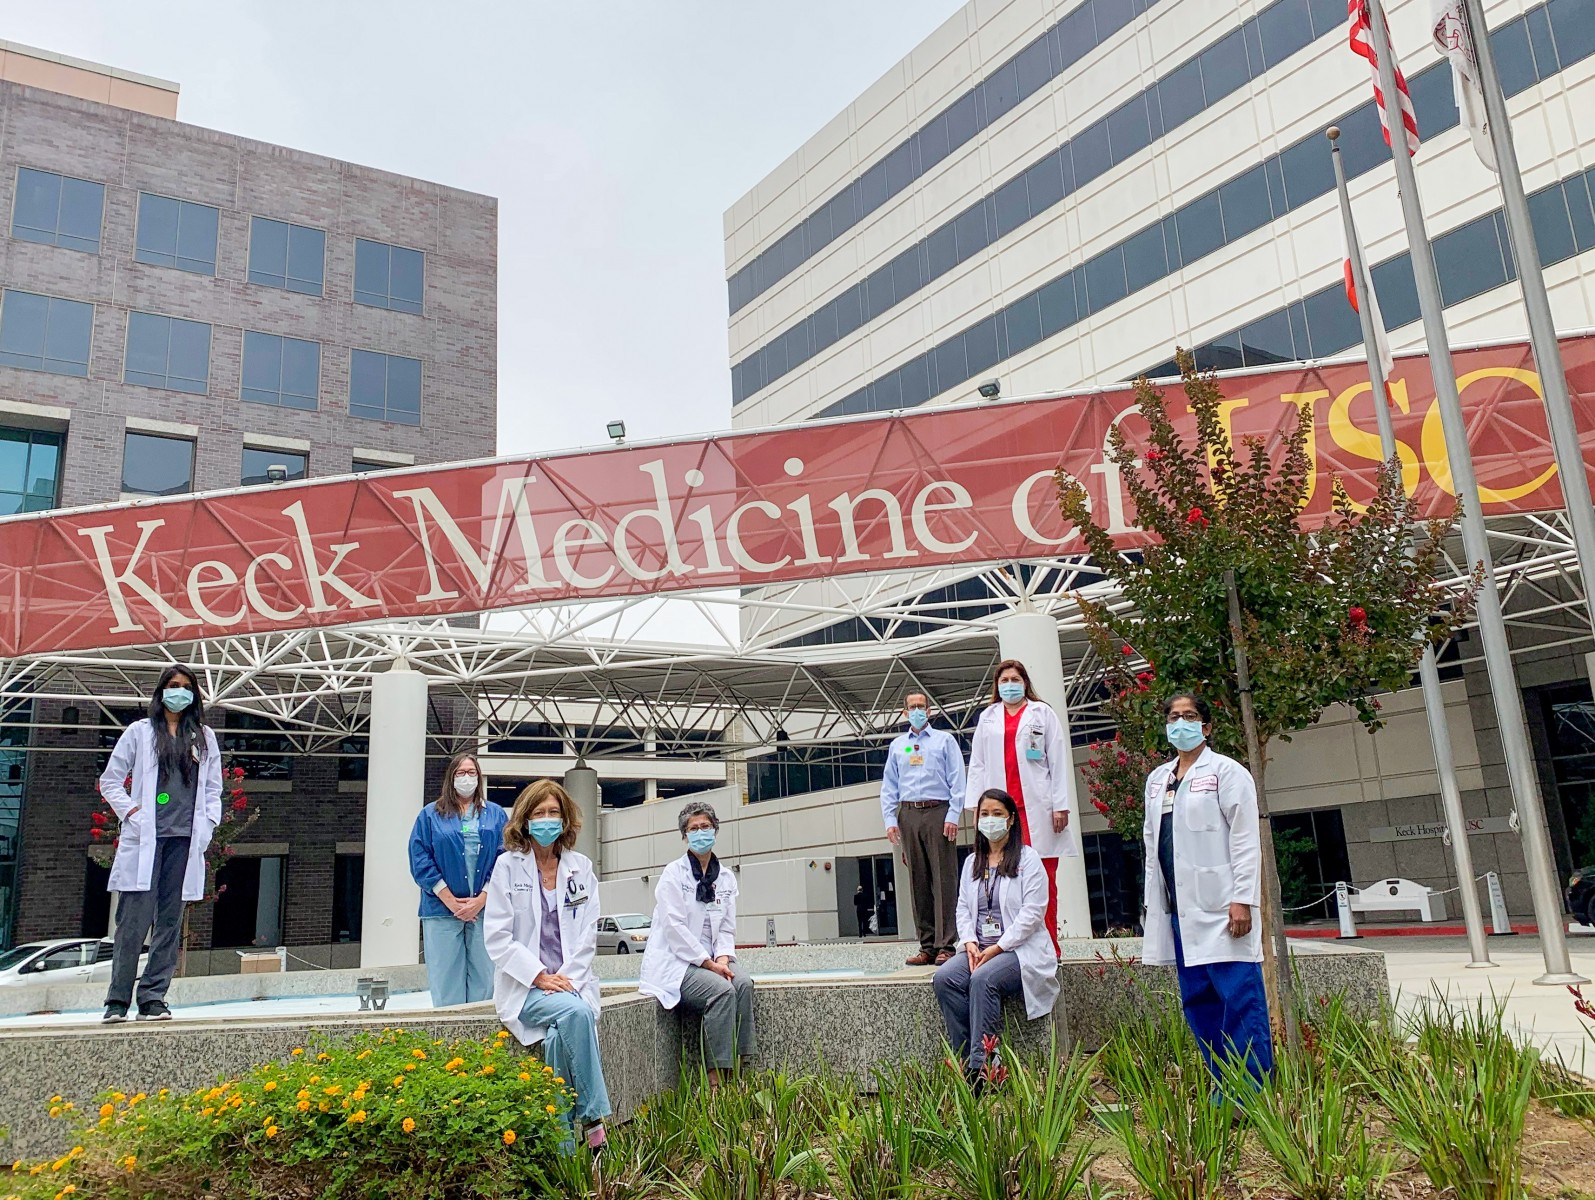 The Keck Medicine of USC lung transplant team that authored the study includes left to right: Jaynita Patel, MS,RD, Tammie Possemato, Felicia Schenkel, MSN, Roya Sadeghi, RN, Jeremy O'Conner, MSW, LCSW, Marian Duong, RD, Maria Bembi, RN, and Sivagini Ganesh, MD, MPH.  Not pictured: Mark L. Barr, MD